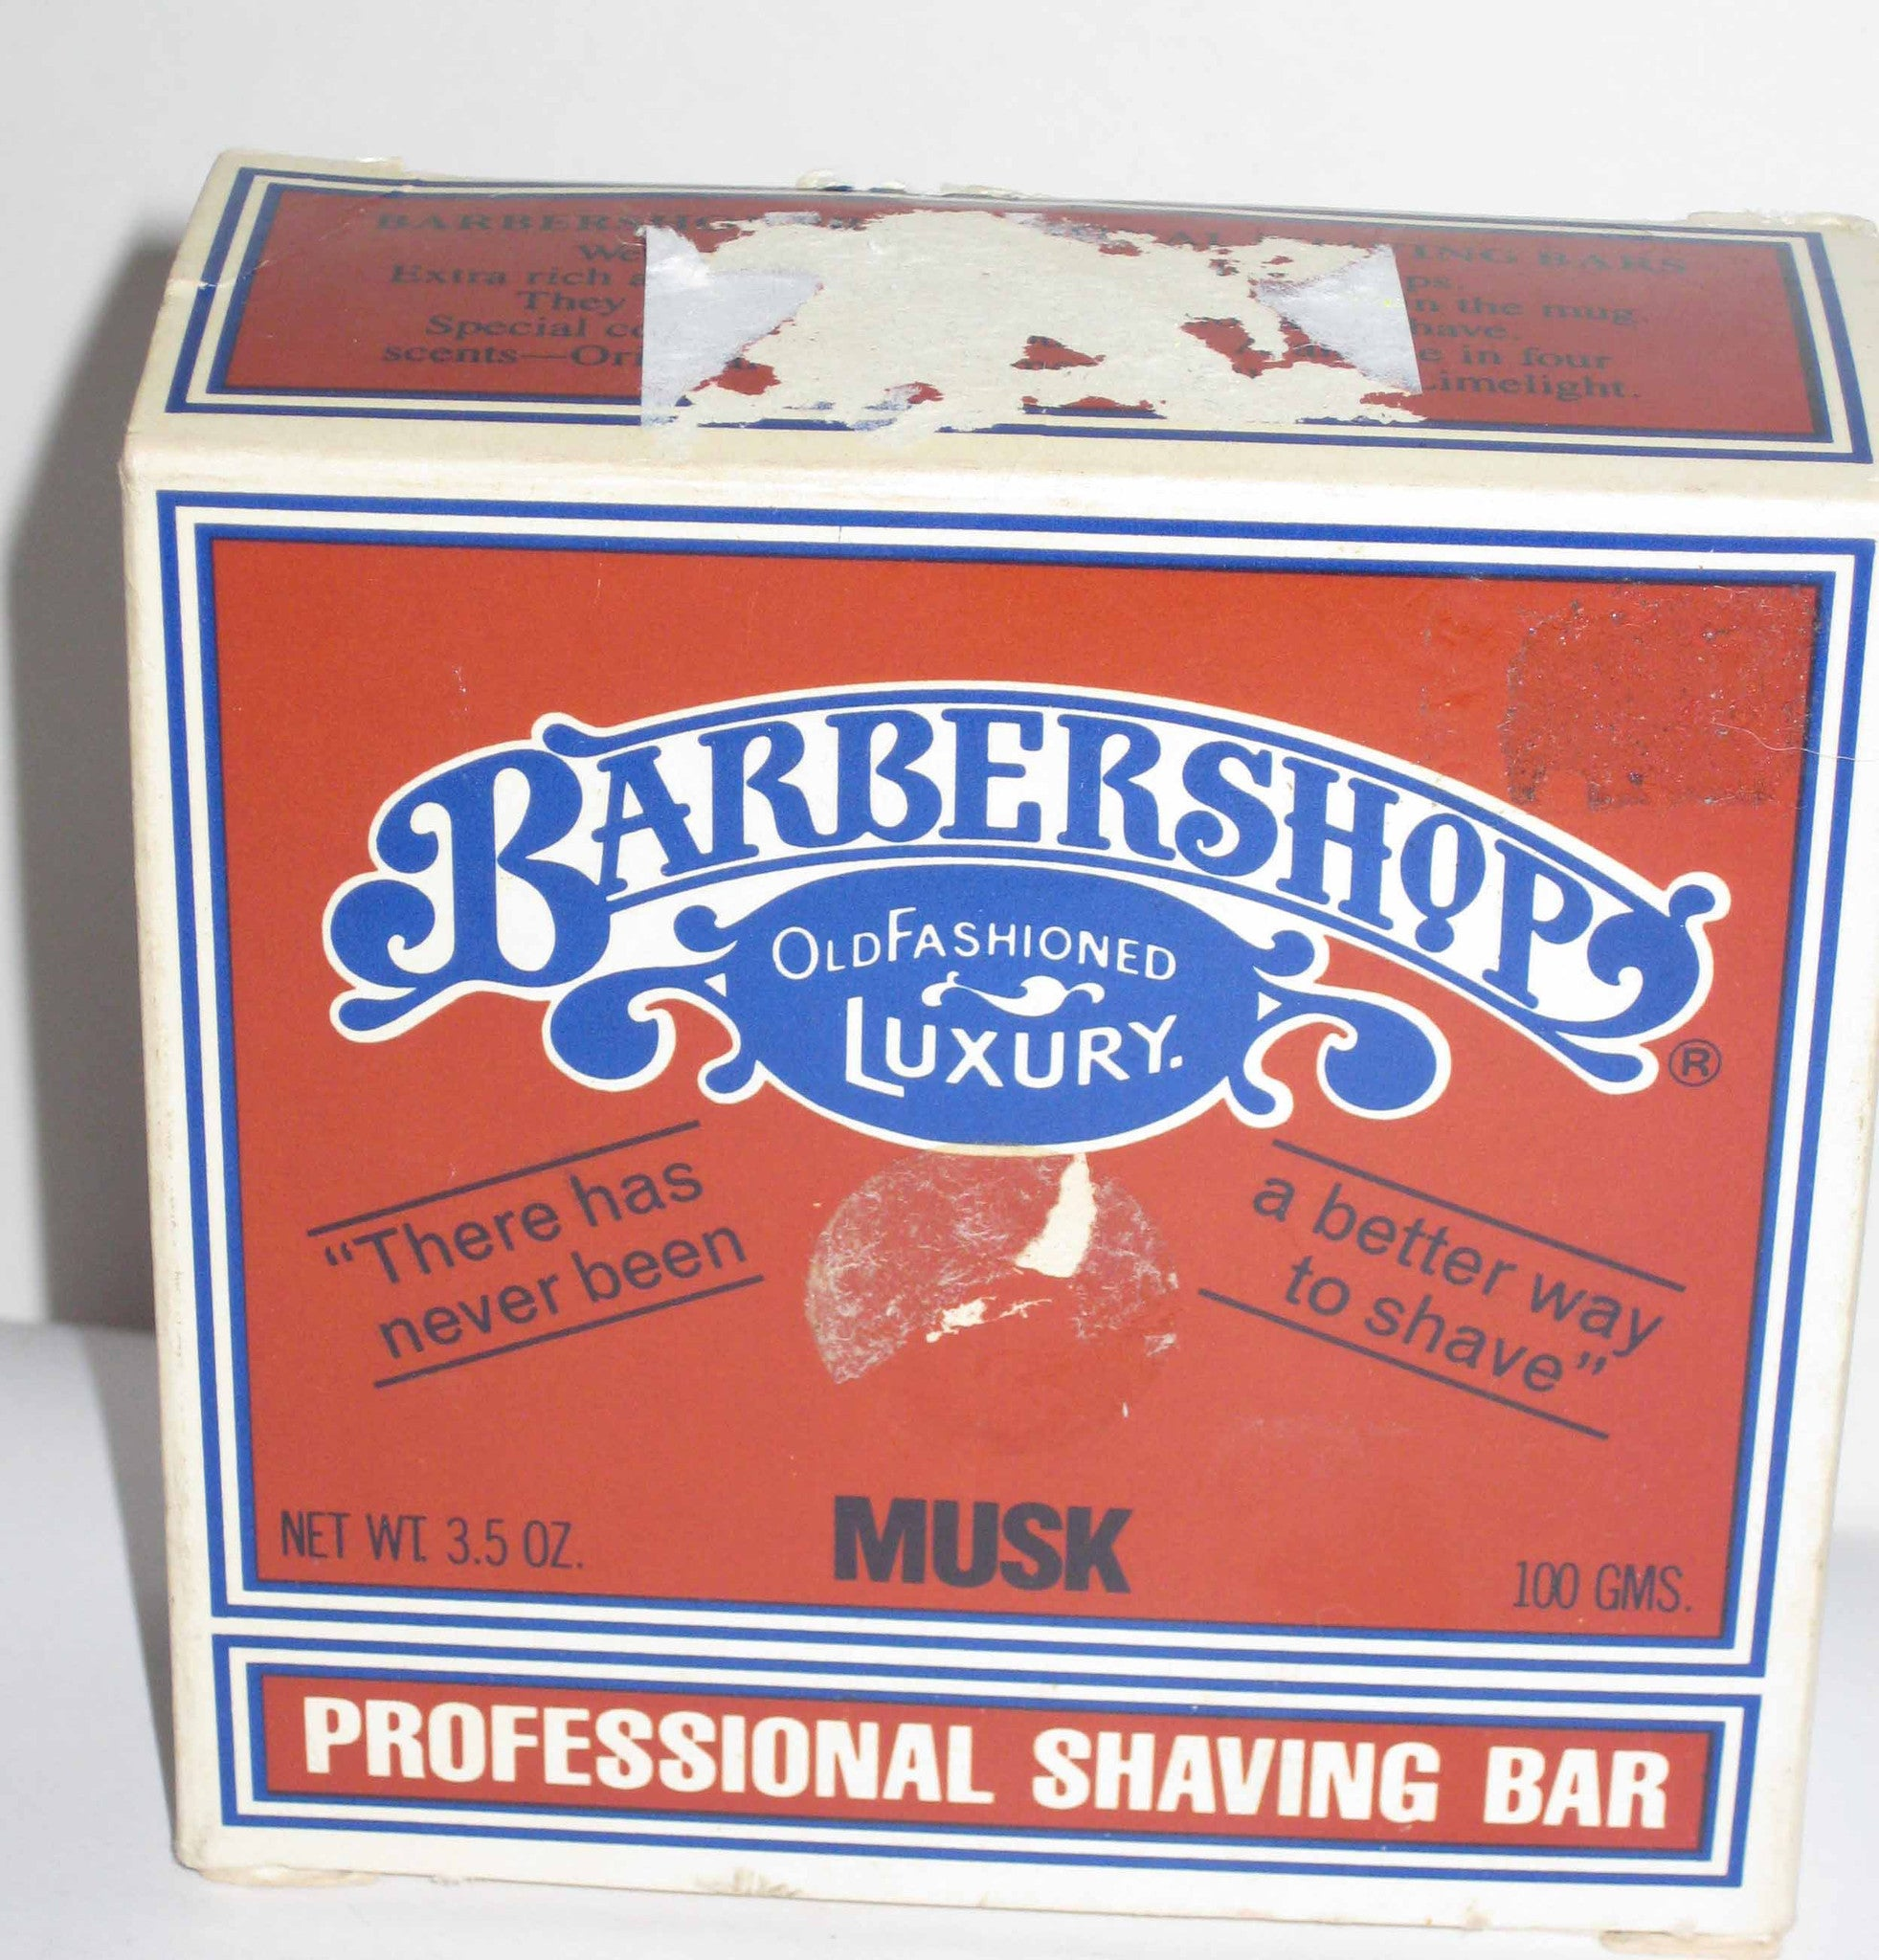 Barbershop Old Fashioned Luxury Musk Professional Soap